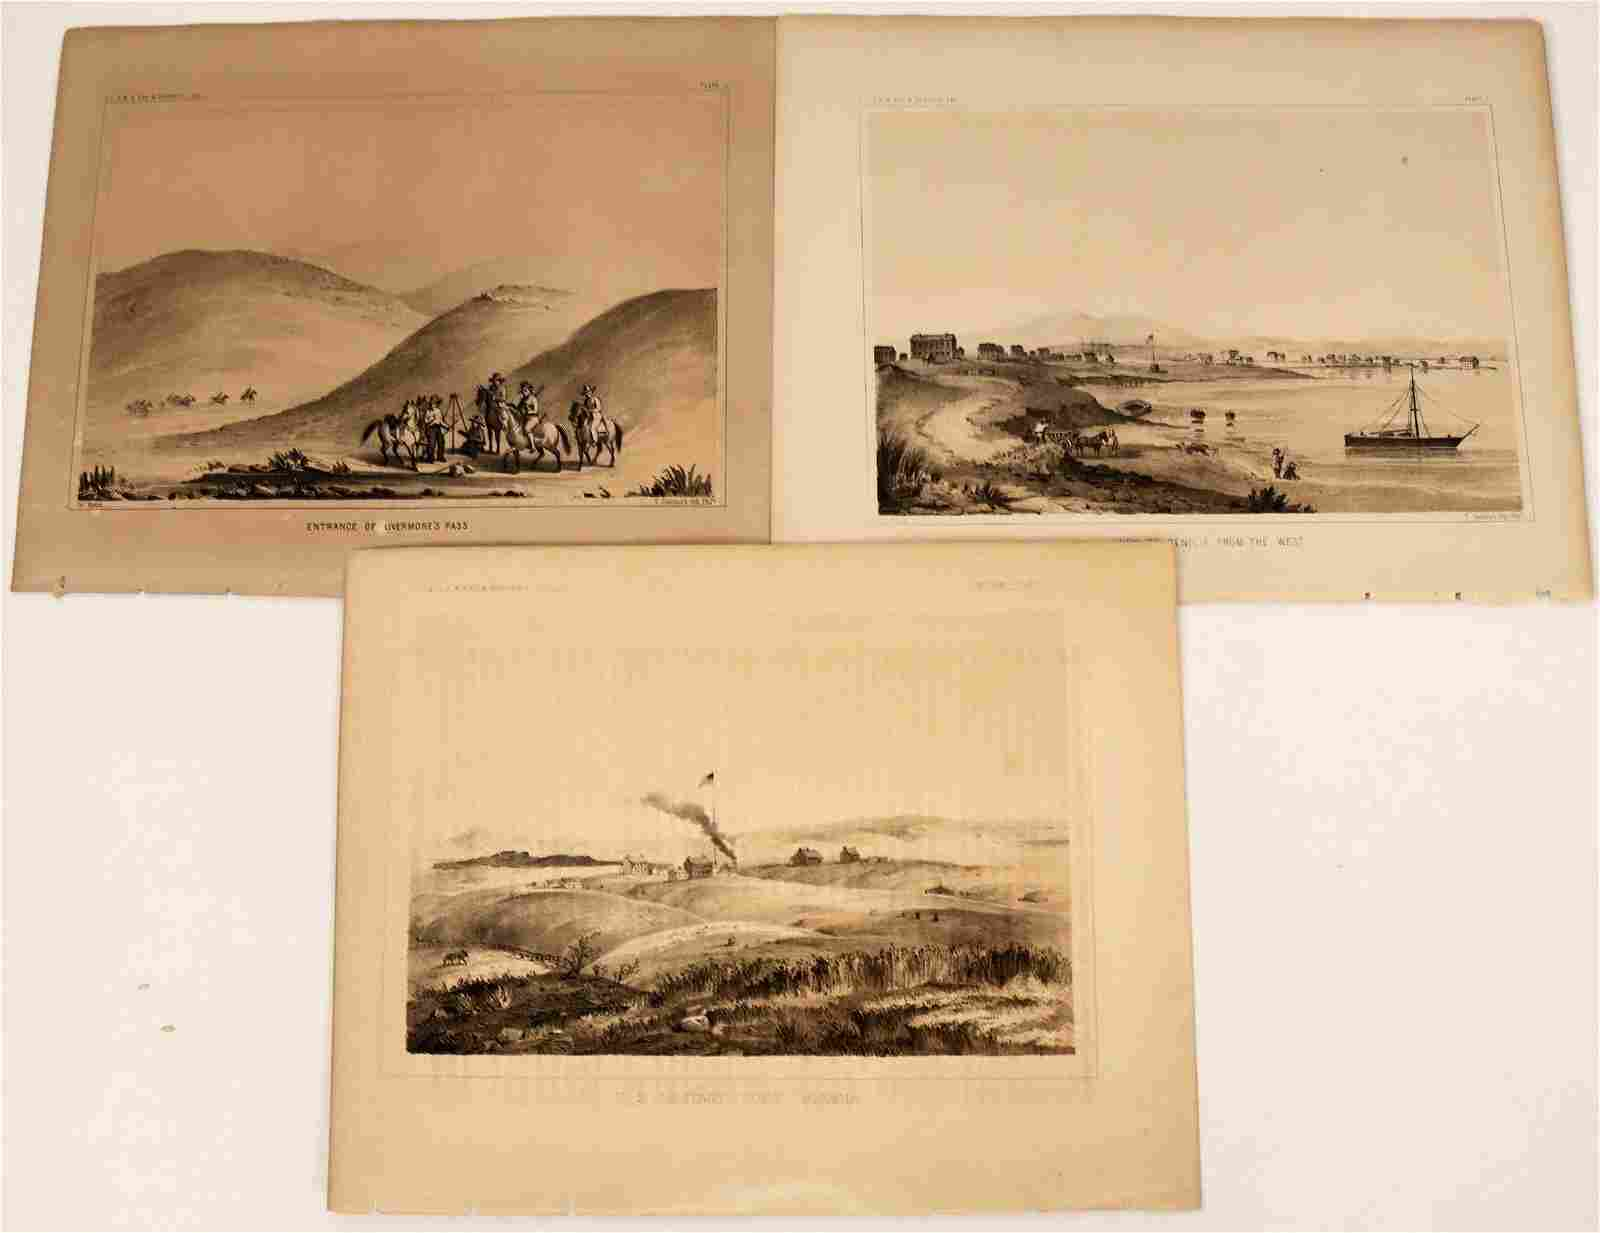 Northern California Lithographs from an Early Railroad